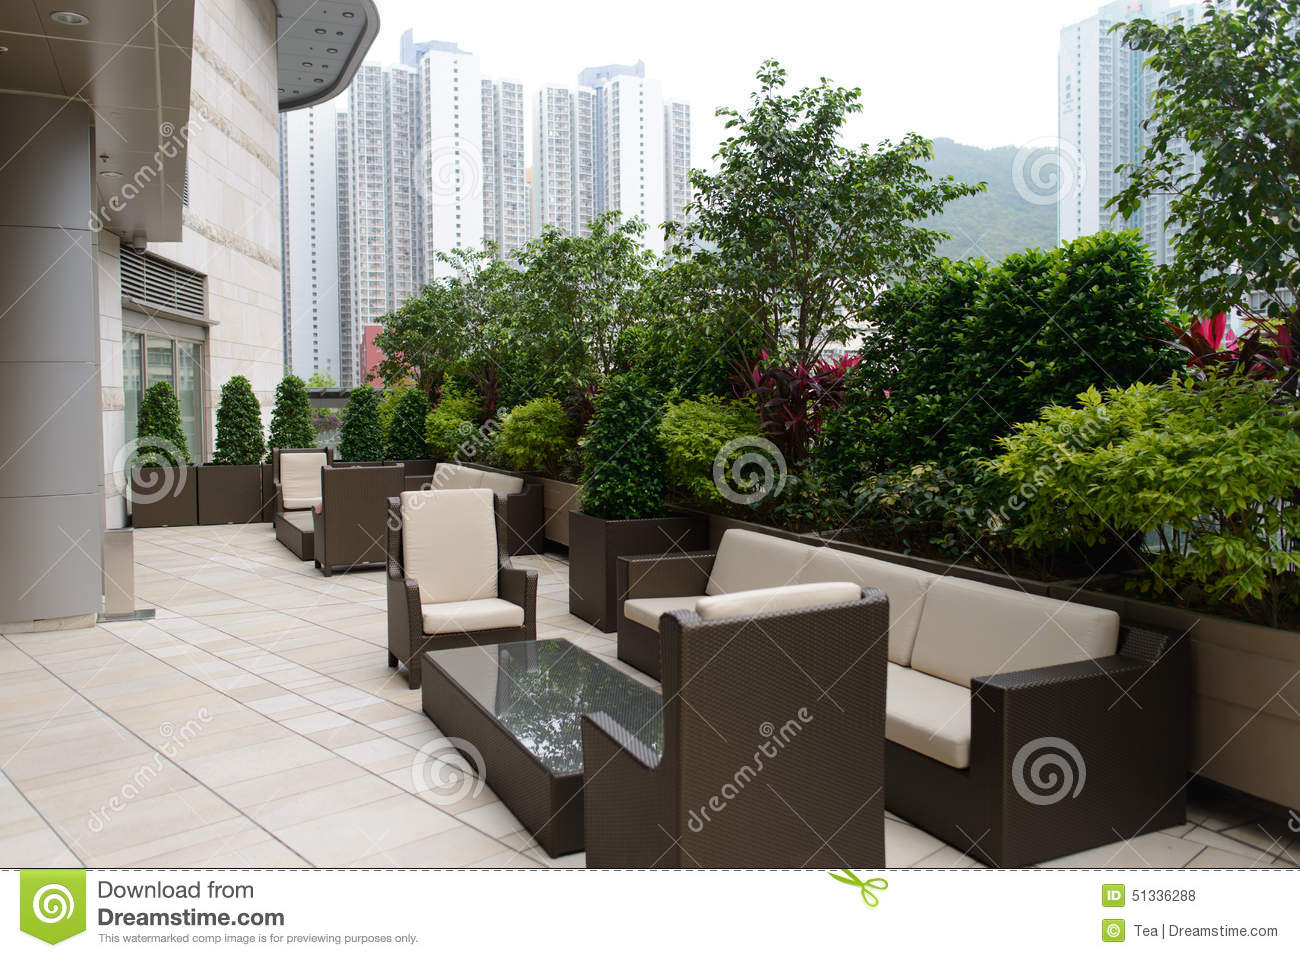 Crowne plaza hotel stock photo image 51336288 for Luxury hotels all over the world